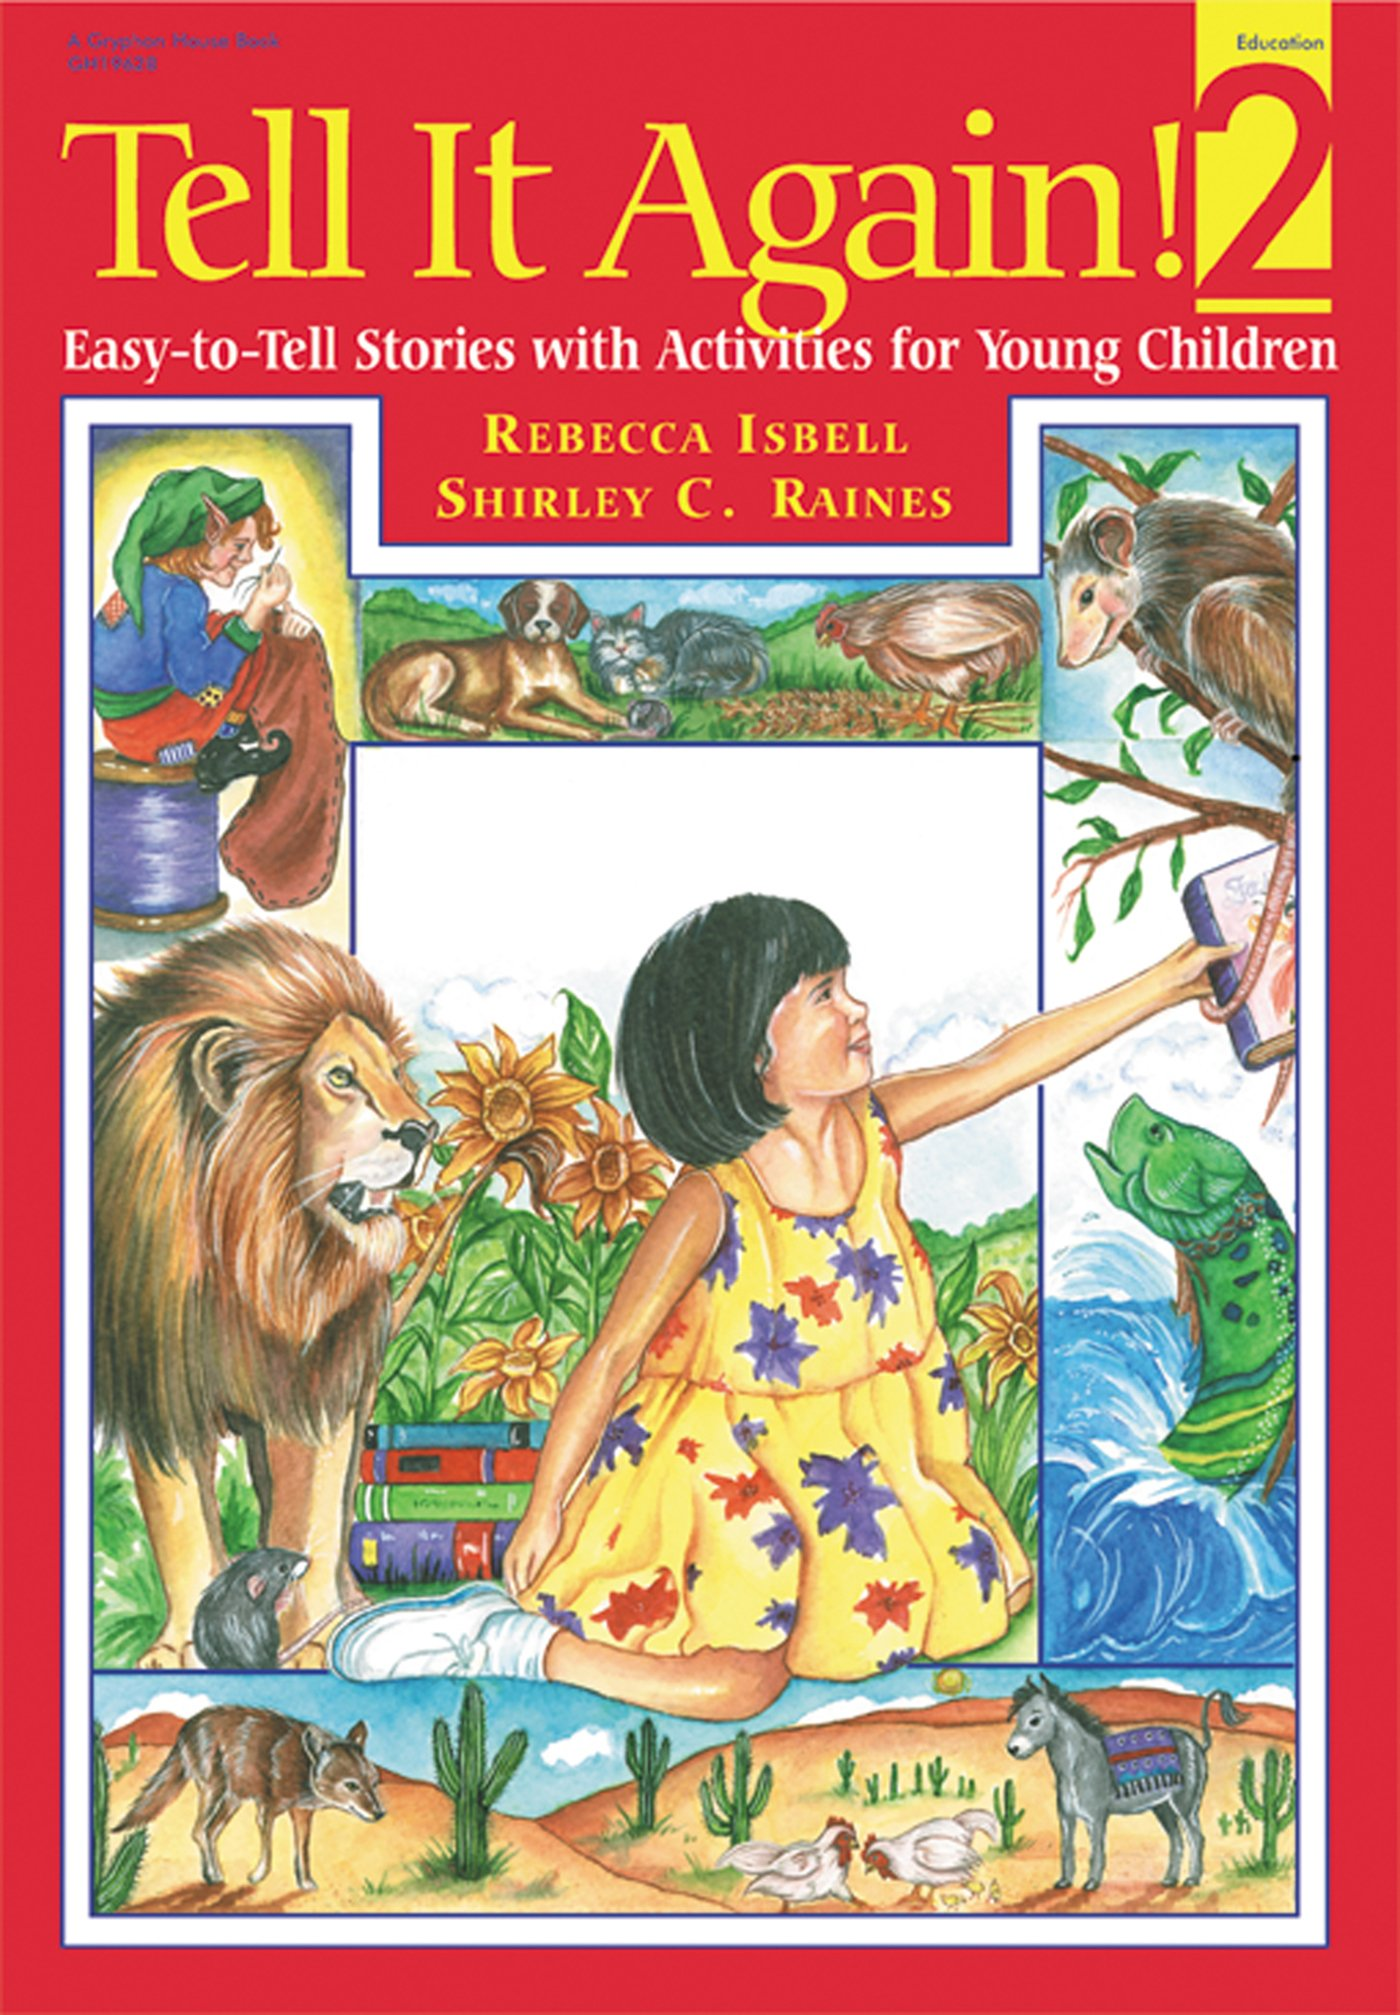 Tell It Again! 2: More Easy-to-Tell Stories with Activities for Young Children PDF